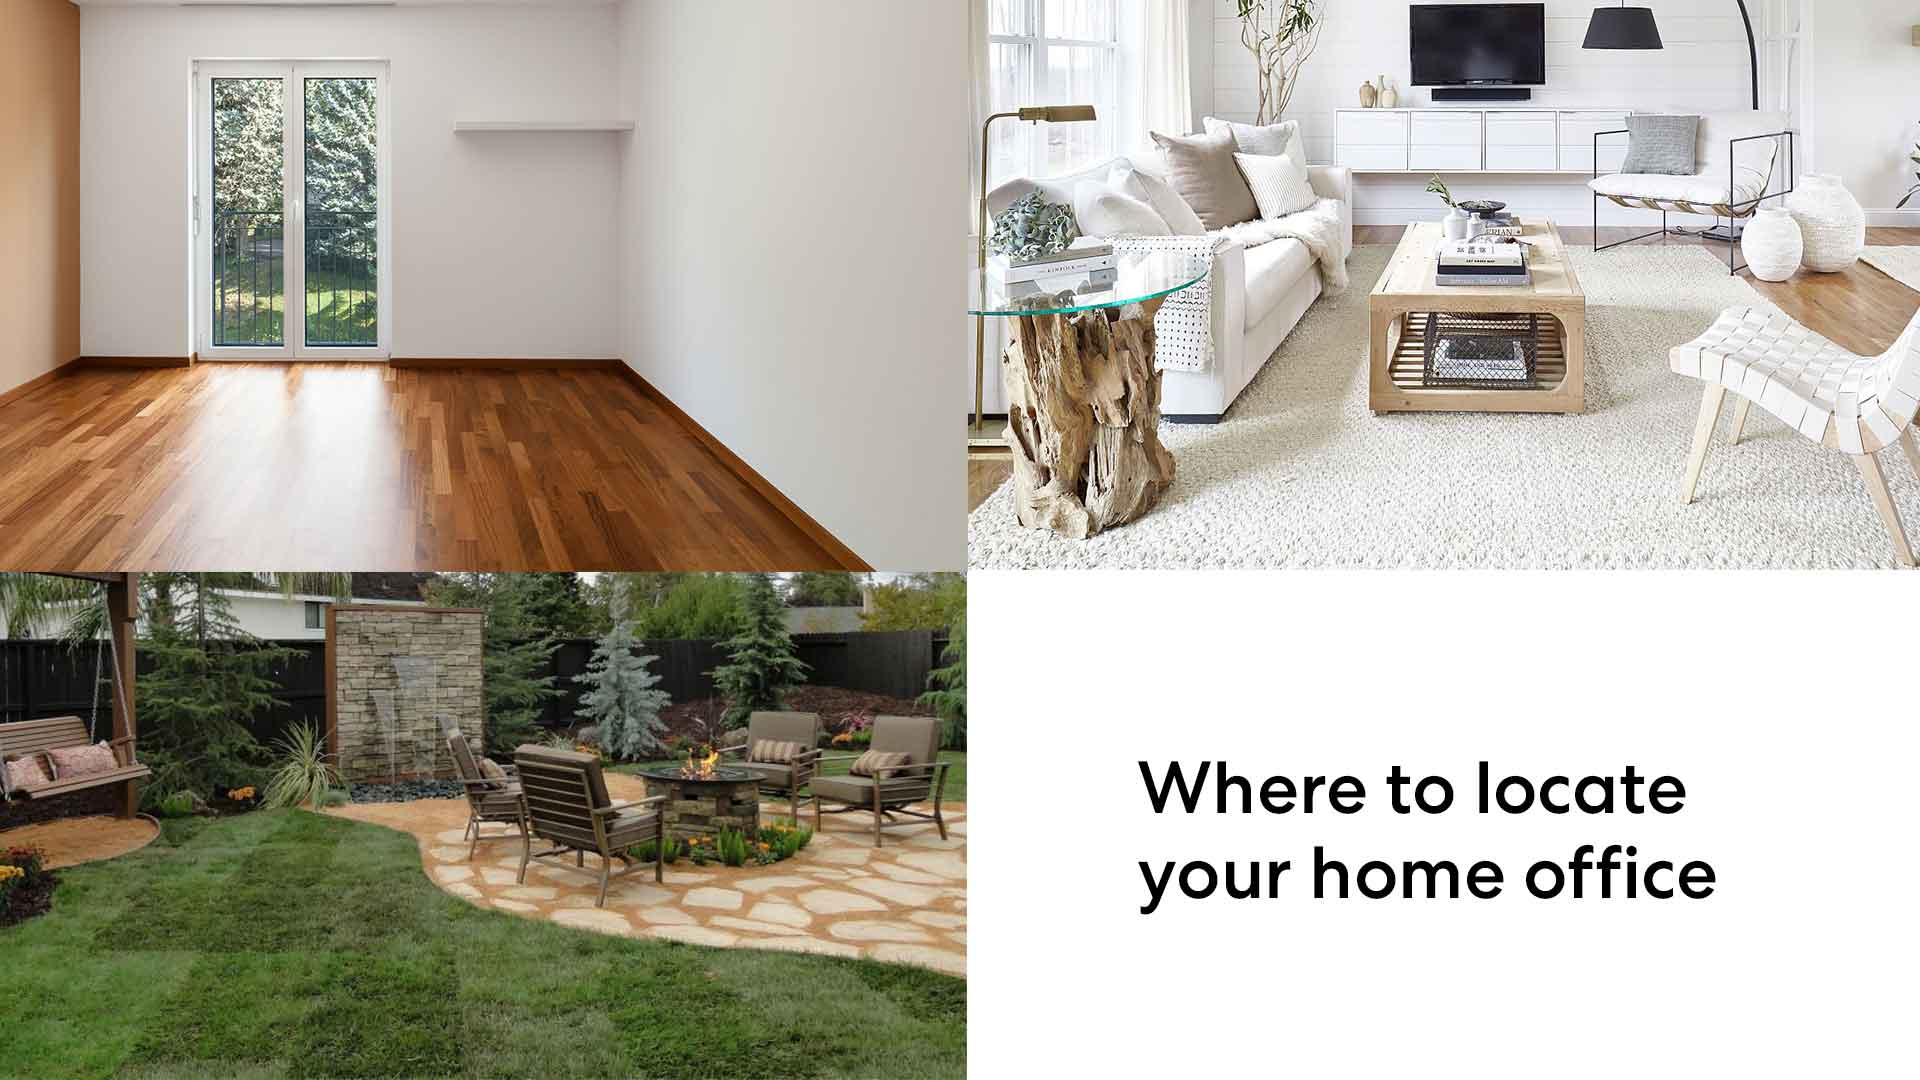 locate your home office